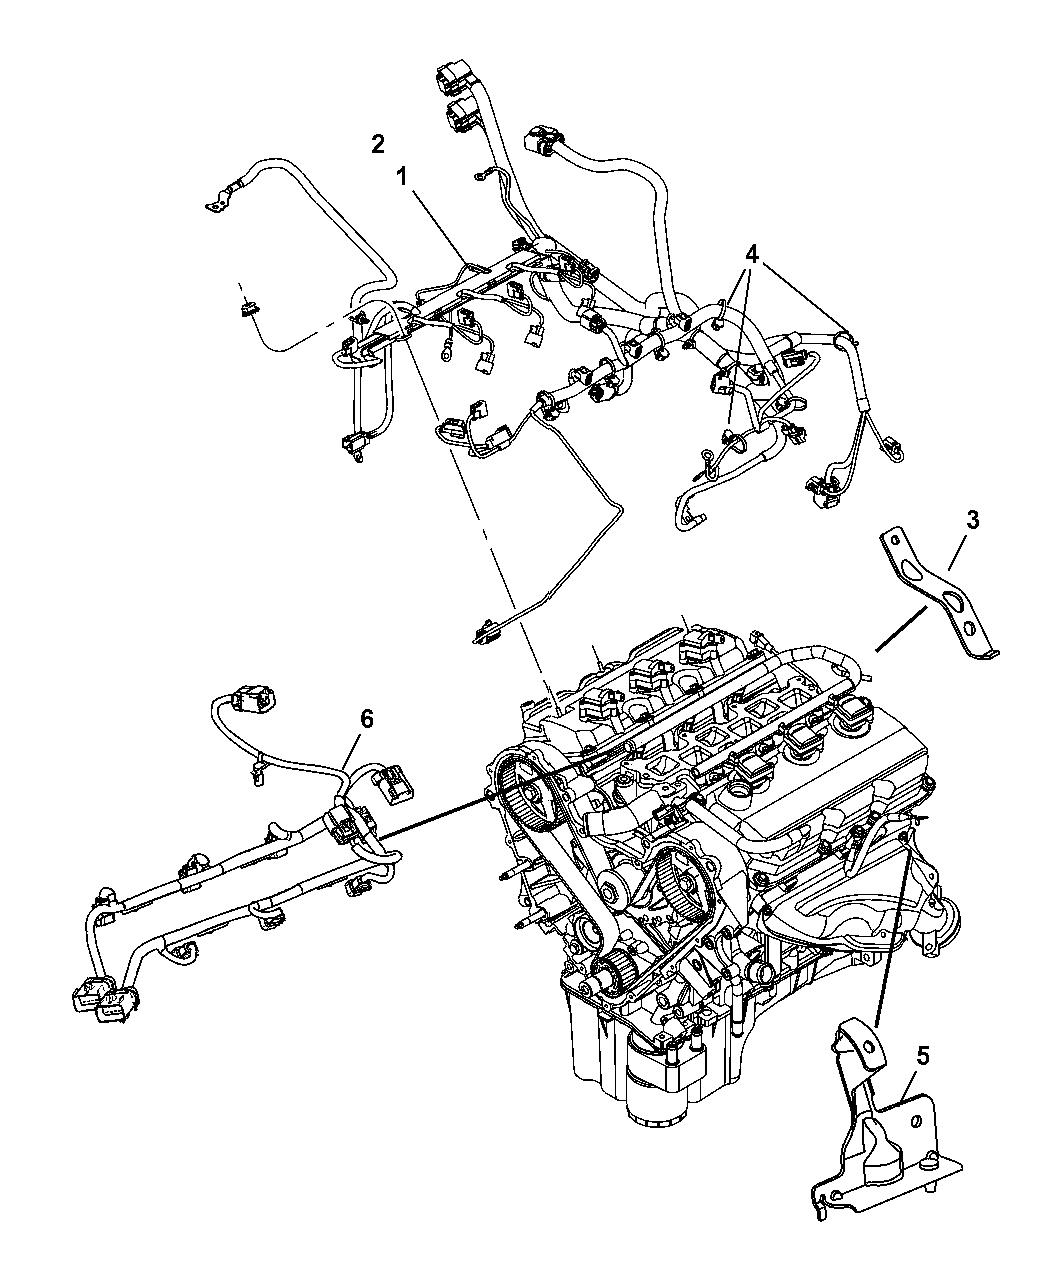 2007 Chrysler Pacifica Wiring - Engine